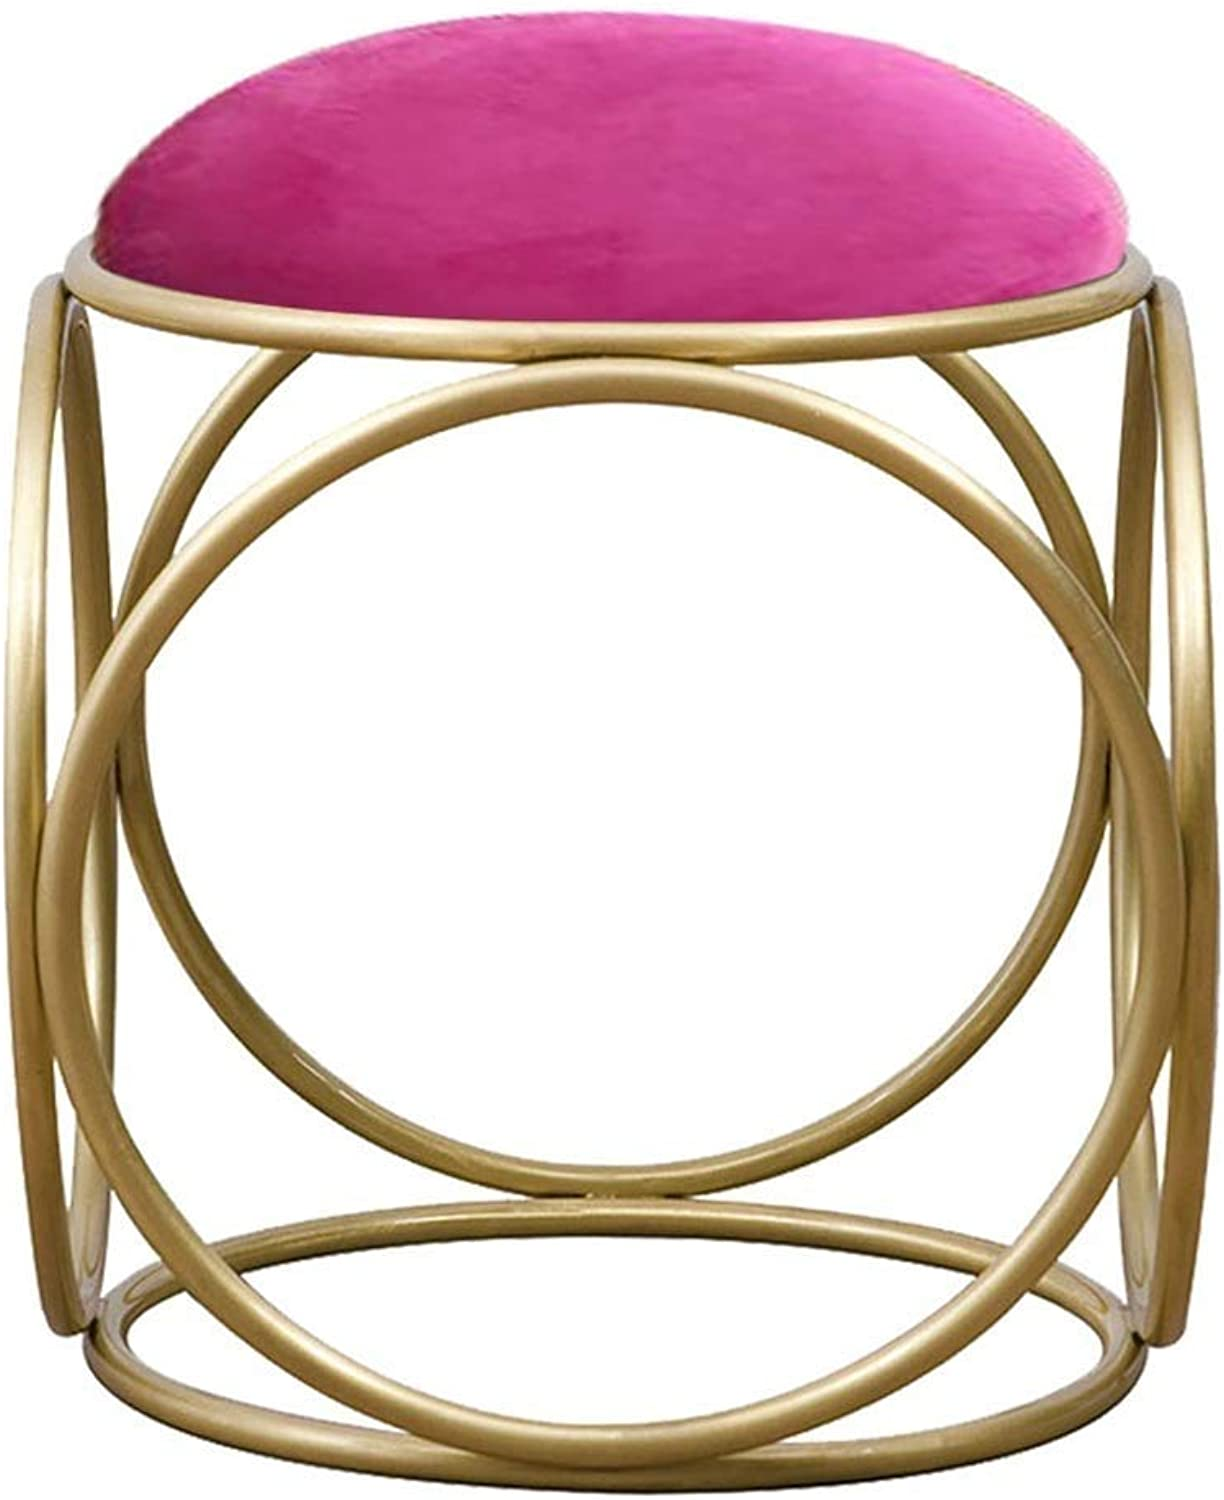 Footstool Nordic Metal Dressing Stool Simple Bedroom Living Room Round Stool, 5 colors GFMING (color   C, Size   40x40x45cm)